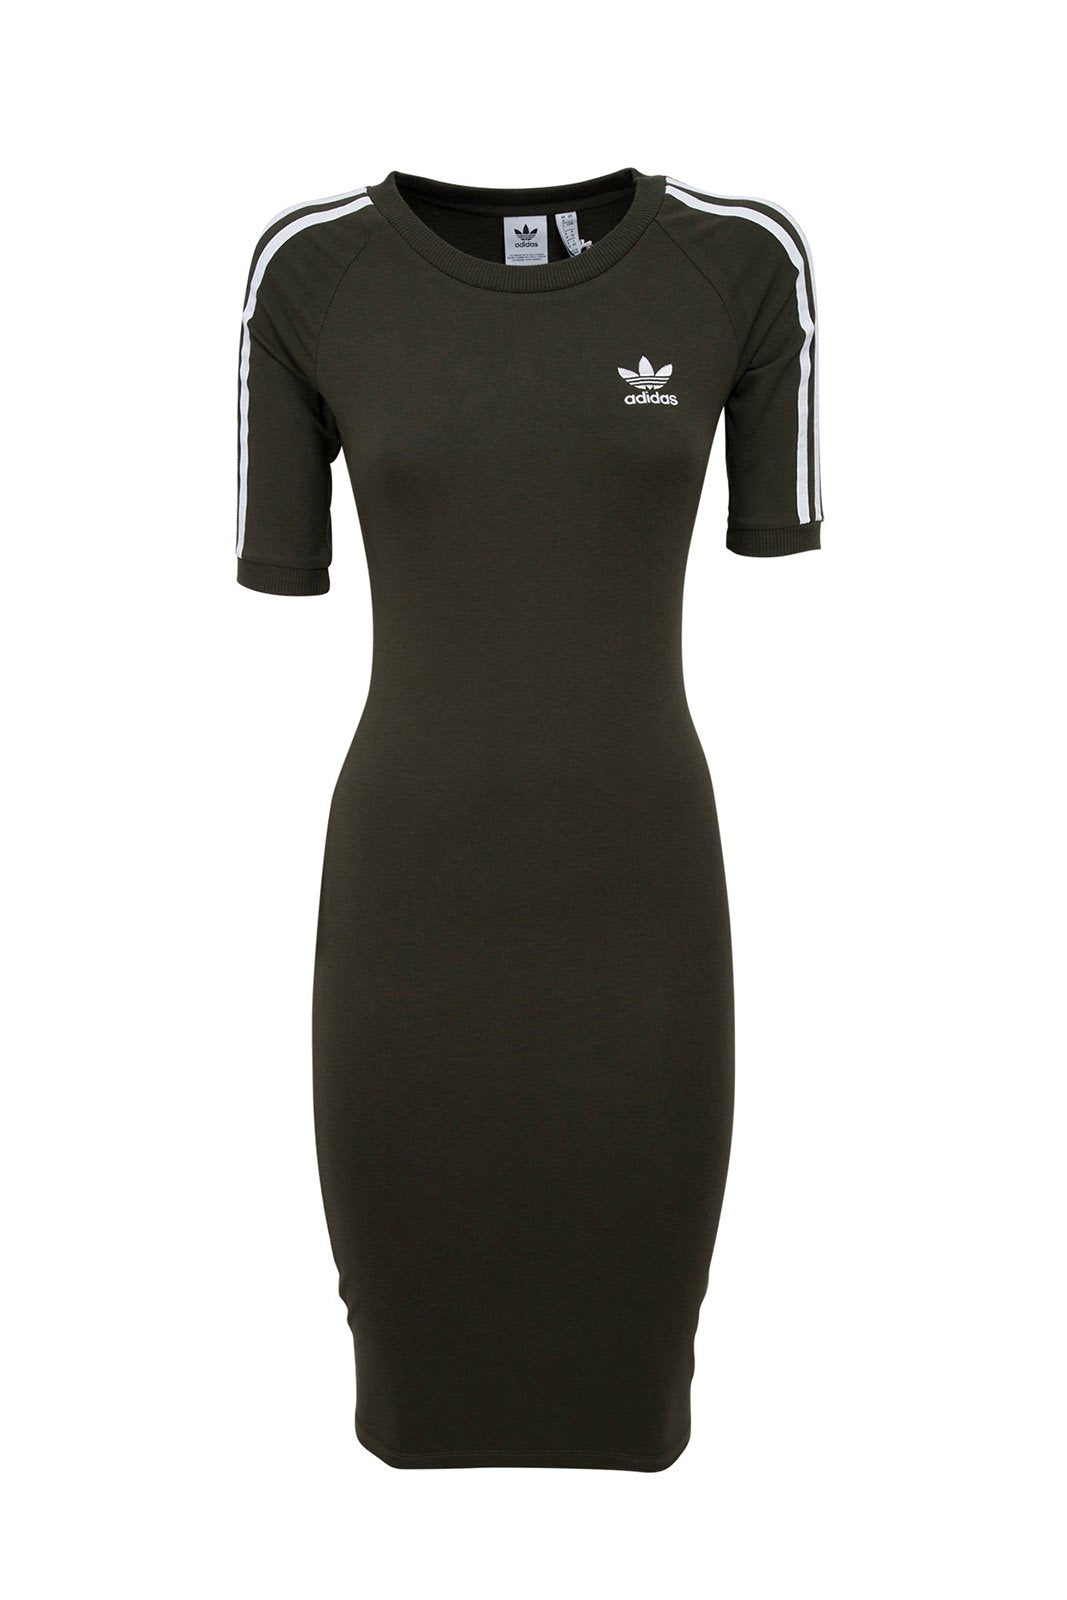 Wmns 3 Stripes Dress Khaki